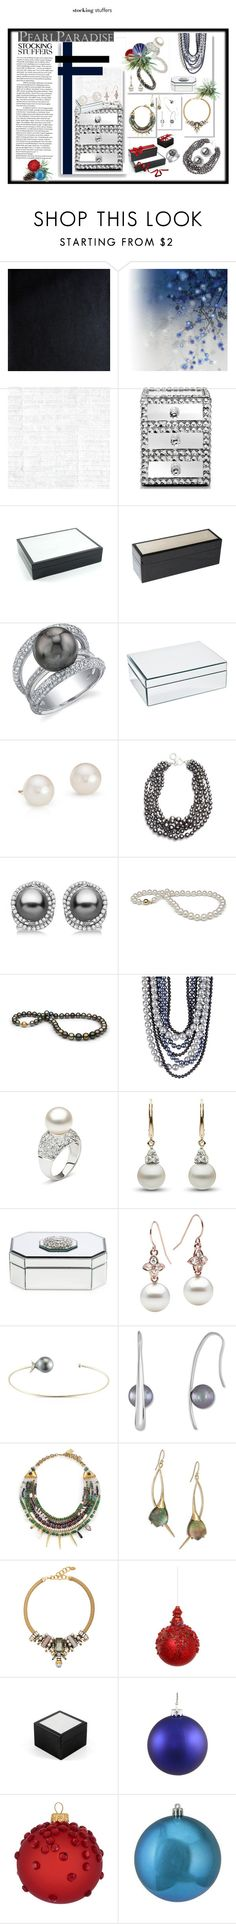 """""""Pearl Paradise"""" by idetached ❤ liked on Polyvore featuring Brewster Home Fashions, Brian Yates, Osborne & Little, Leeber Limited, Godinger, Blue Nile, Anne Klein, Allurez, Majorica and Lizzie Fortunato"""